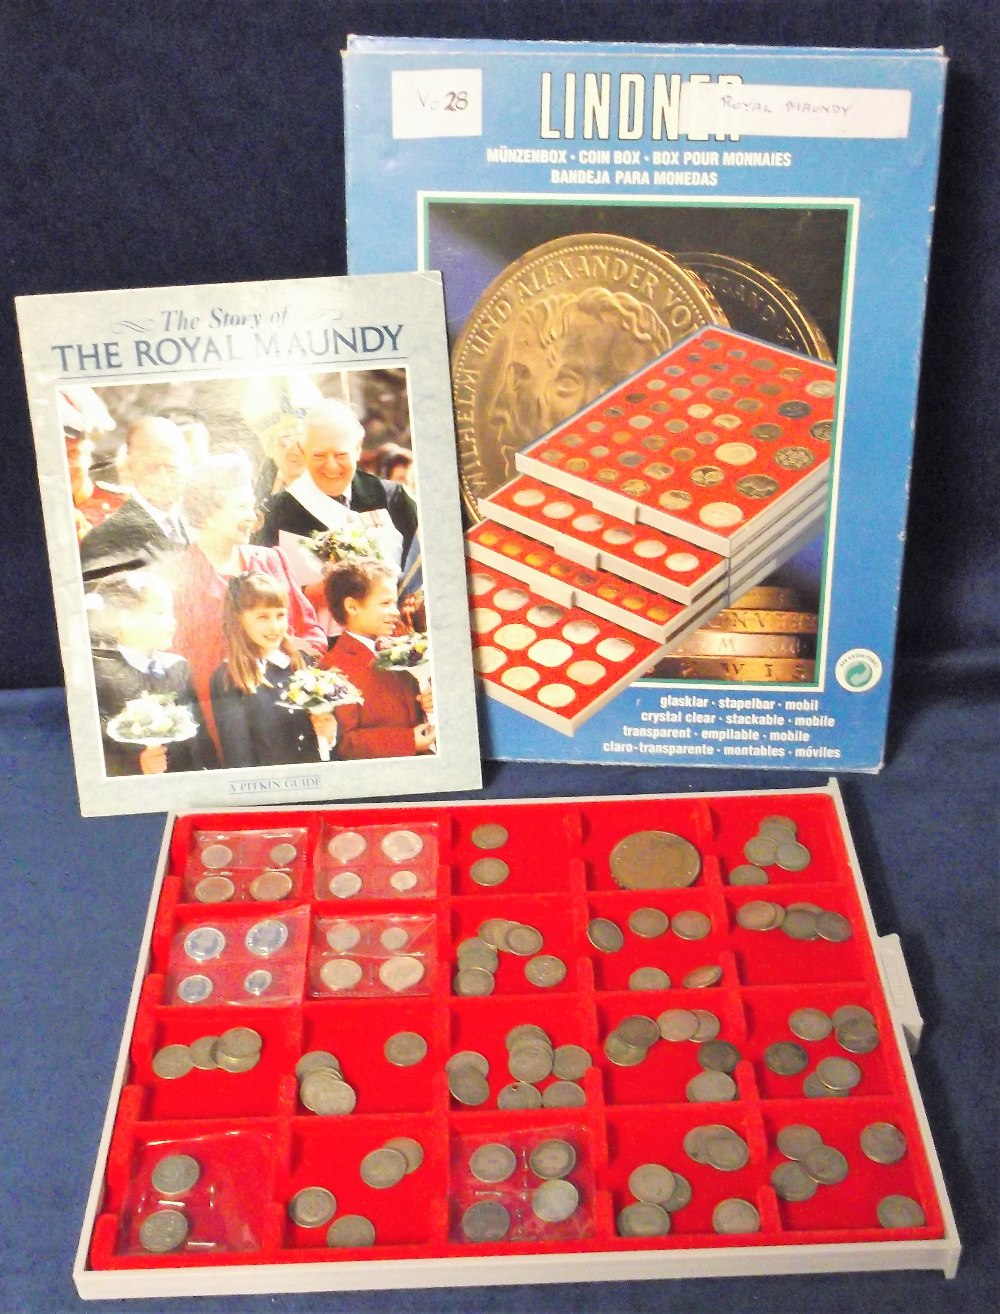 Lot 48 - Coins, GB, Lindner coin tray containing 4 Maundy coin sets 1937, 1954, & 2 sets for 2002 all FDC